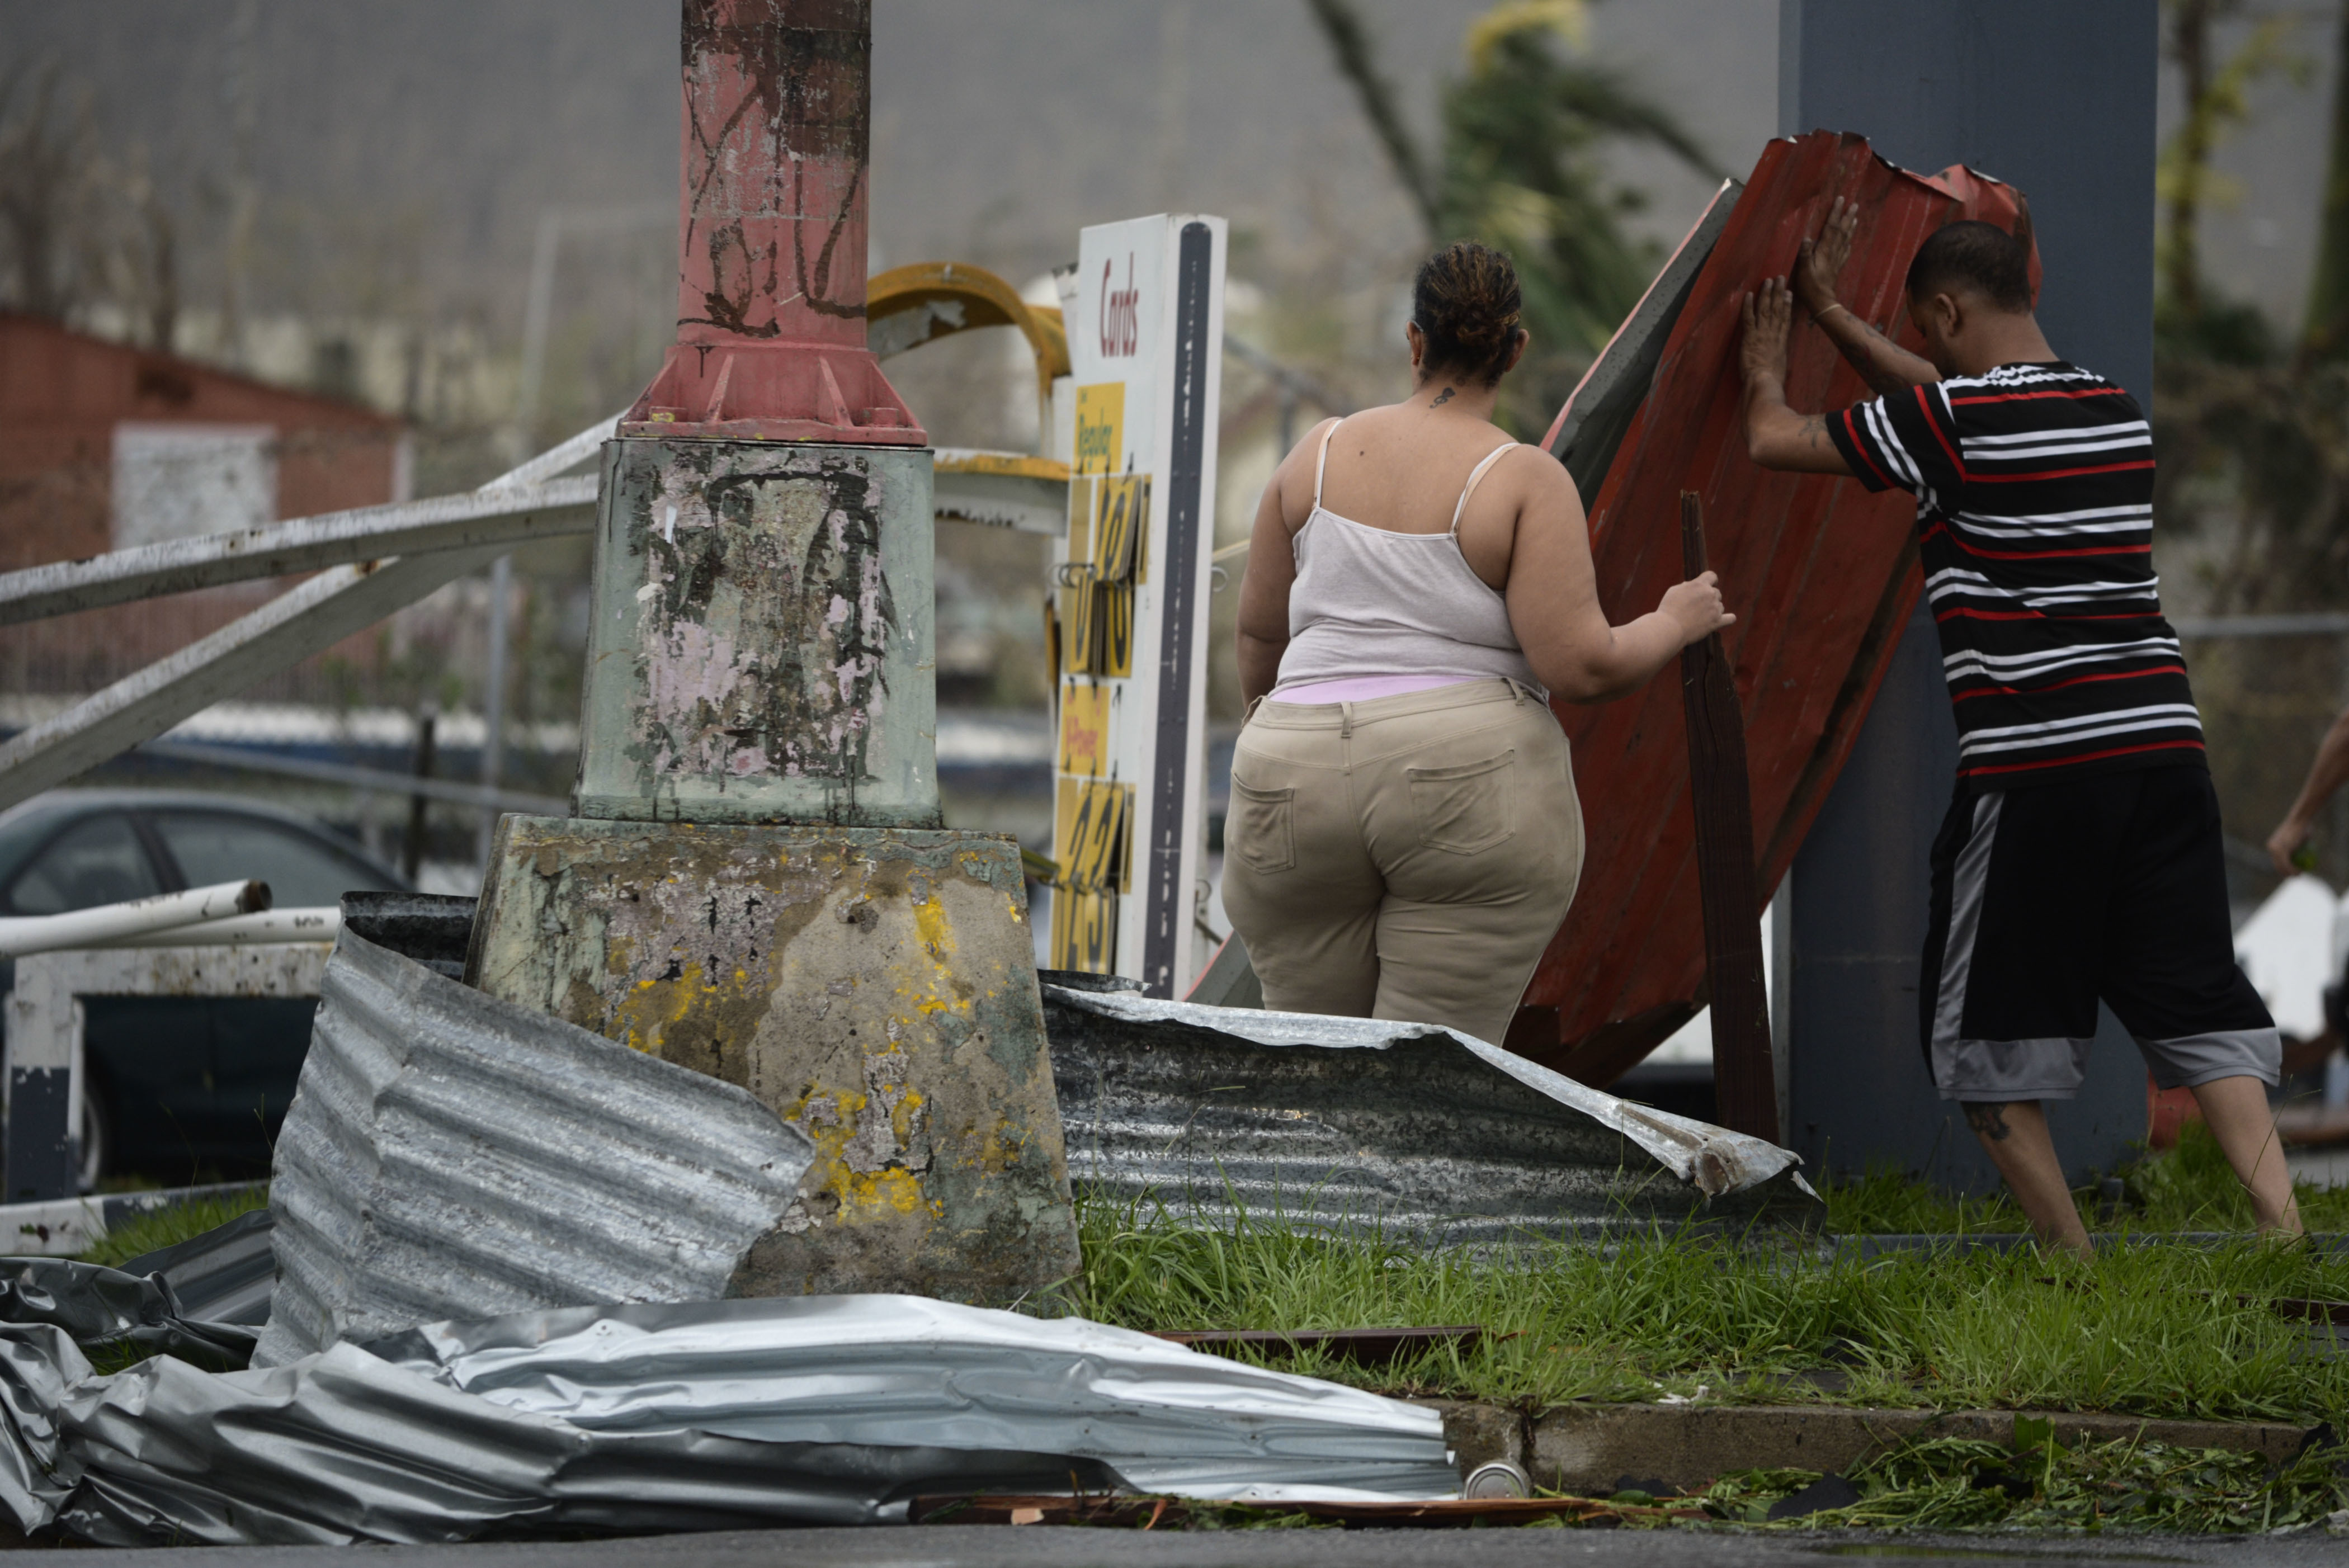 <div class='meta'><div class='origin-logo' data-origin='none'></div><span class='caption-text' data-credit='Carlos Giusti/AP Photo'>Residents move aluminum panels from an intersection after Hurricane Maria hit the eastern region of the island, in Humacao, Puerto Rico, Wednesday, Sept. 20, 2017.</span></div>